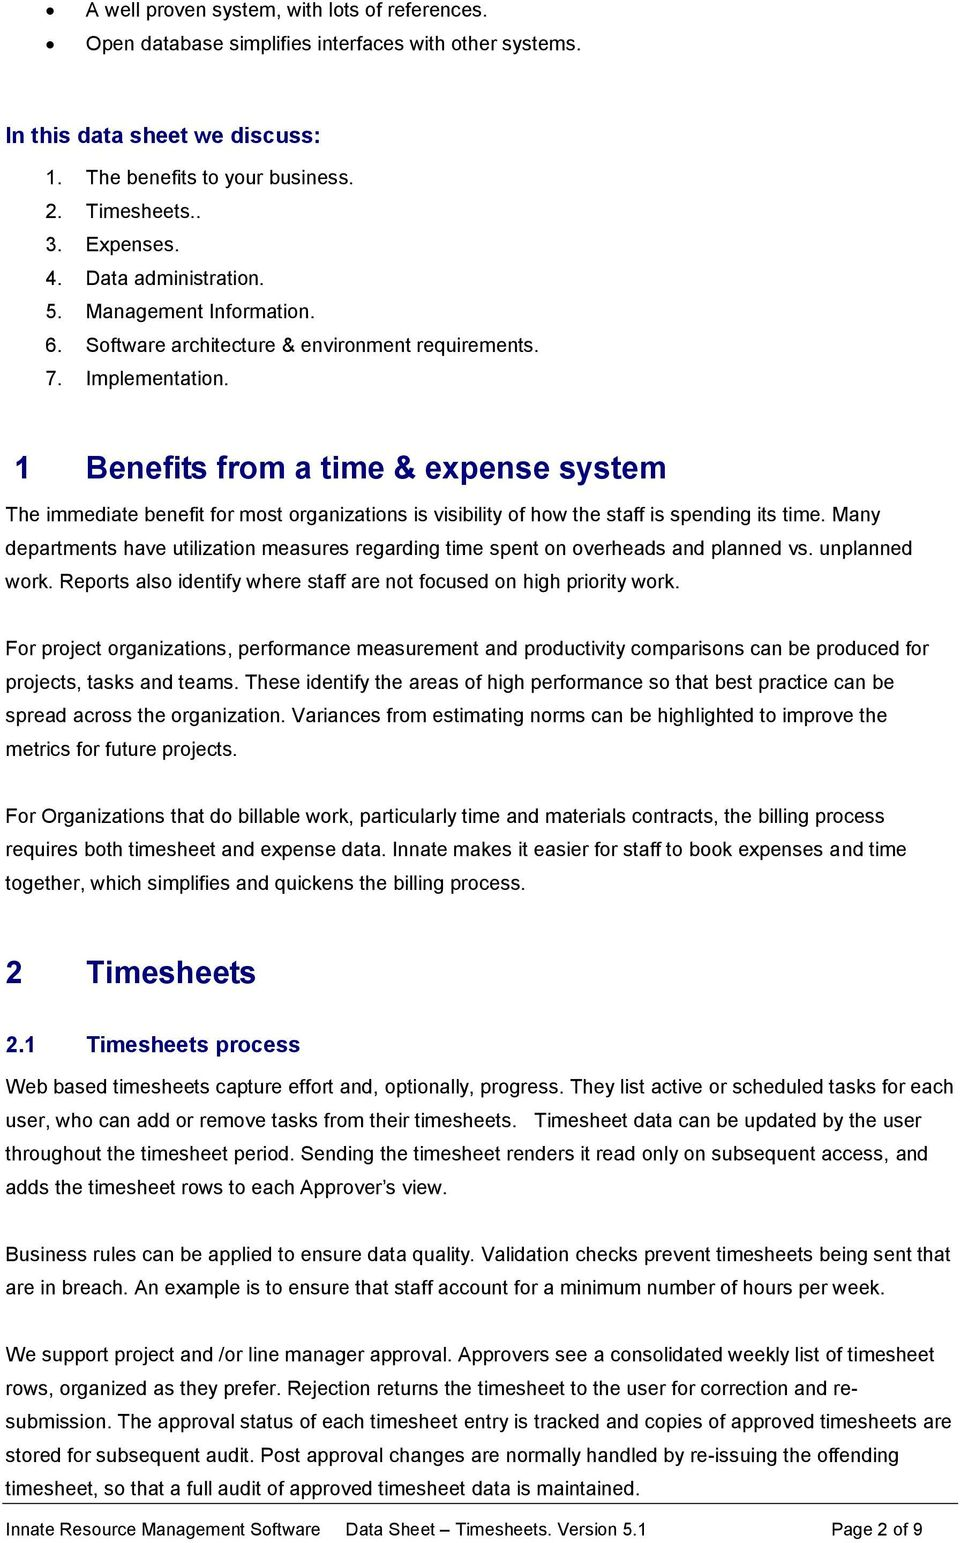 1 Benefits from a time & expense system The immediate benefit for most organizations is visibility of how the staff is spending its time.